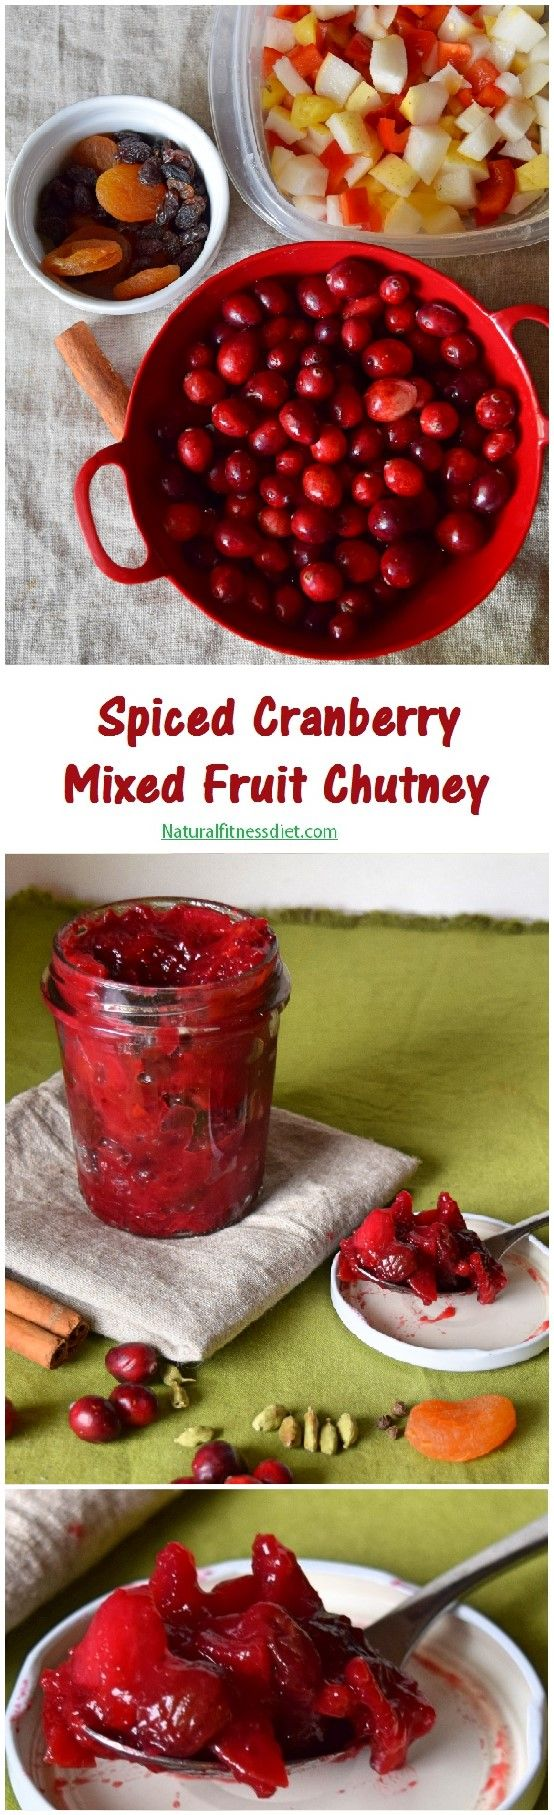 Easy homemade chutney recipes